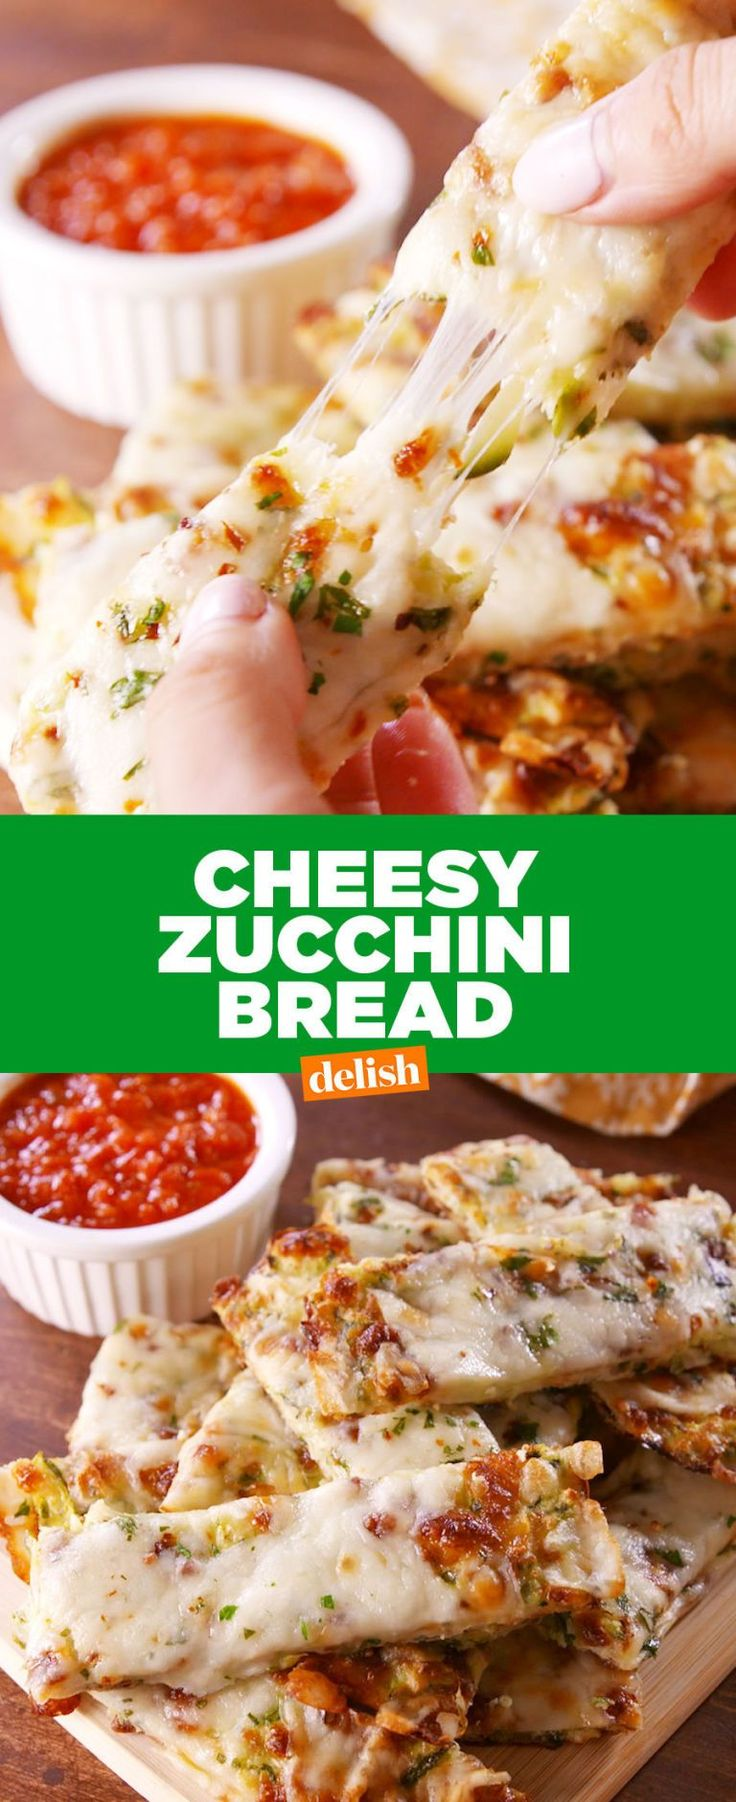 Zucchini Cheesy Bread - Delish.com